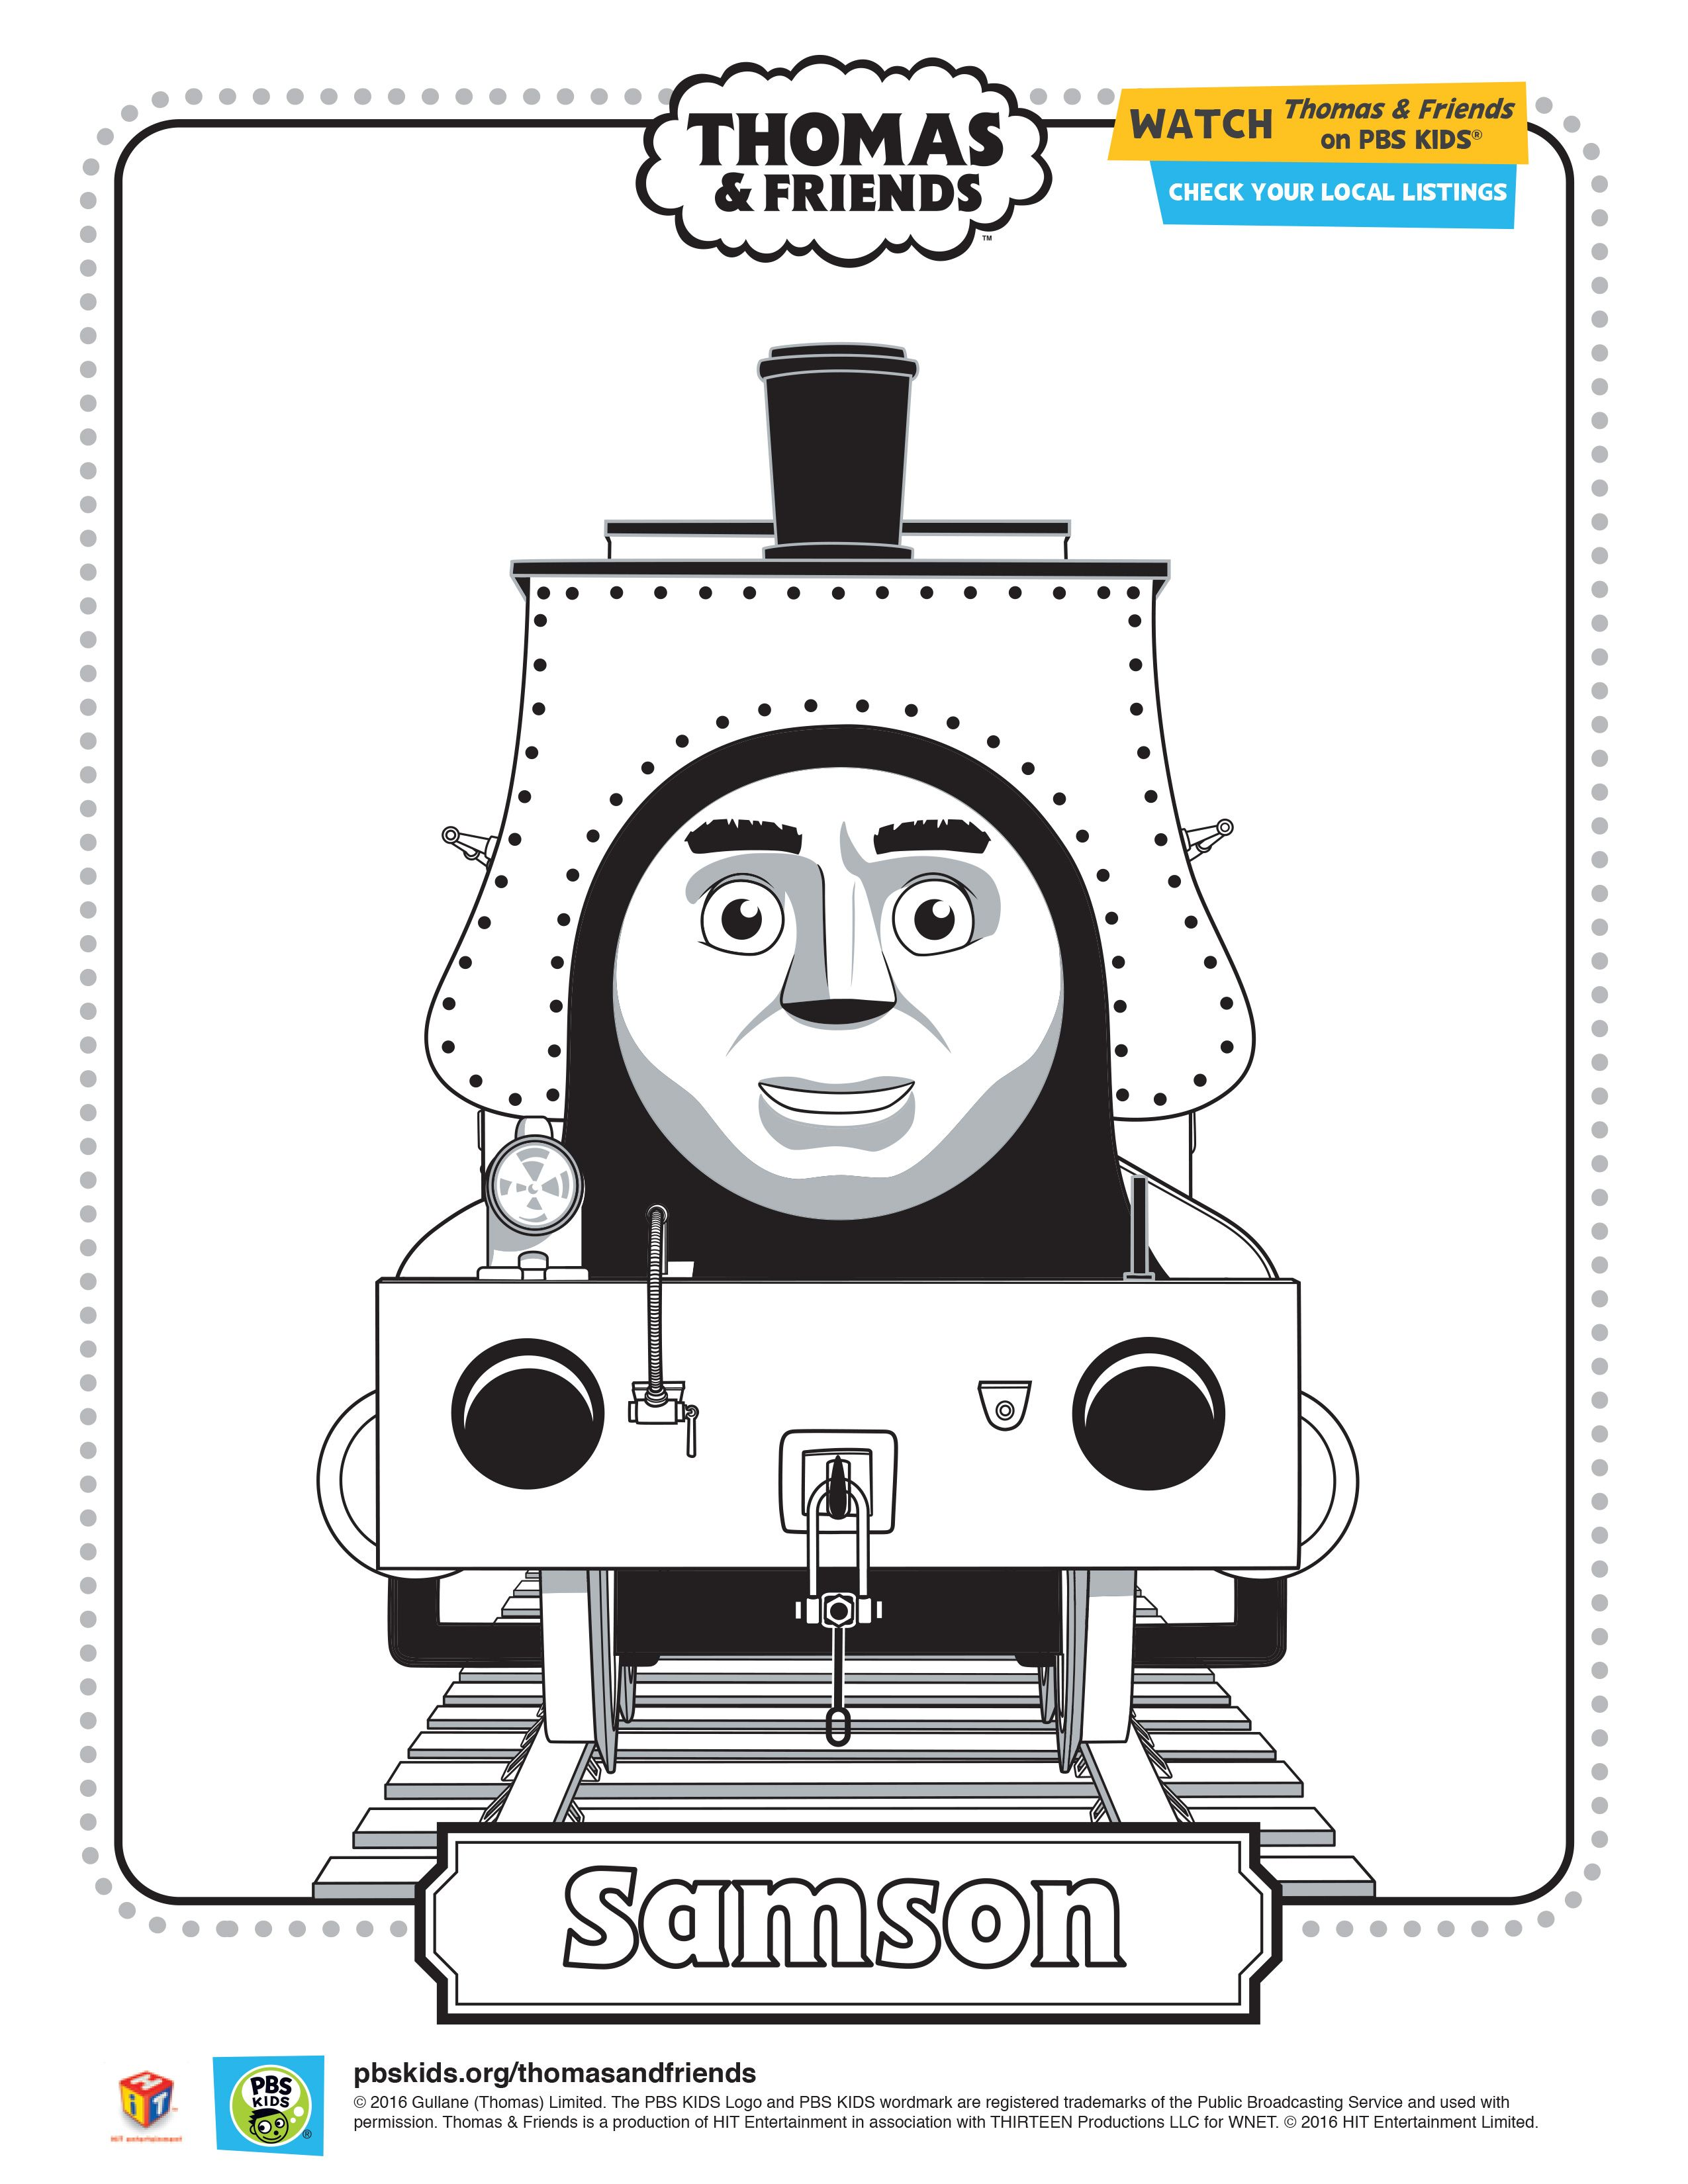 Samson Coloring Sheet Thomasandfriends Pbskids Printable